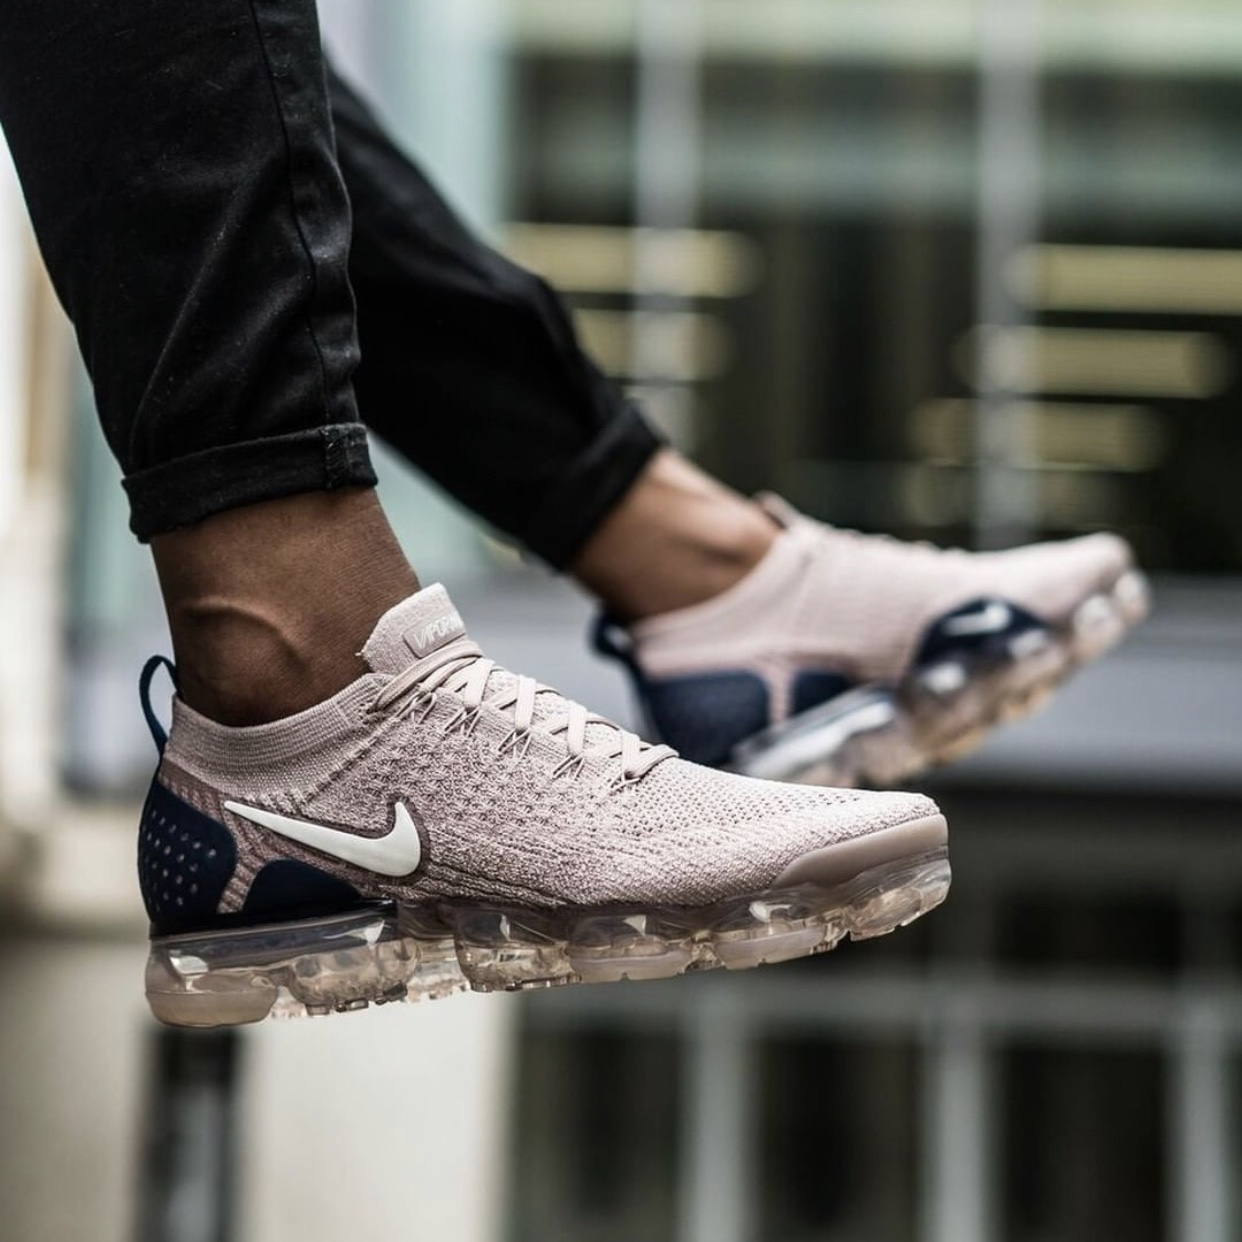 check out 3d53b f02d1 Nike Air Vapormax Flyknit 2 Diffused Taupe - Size... - Depop